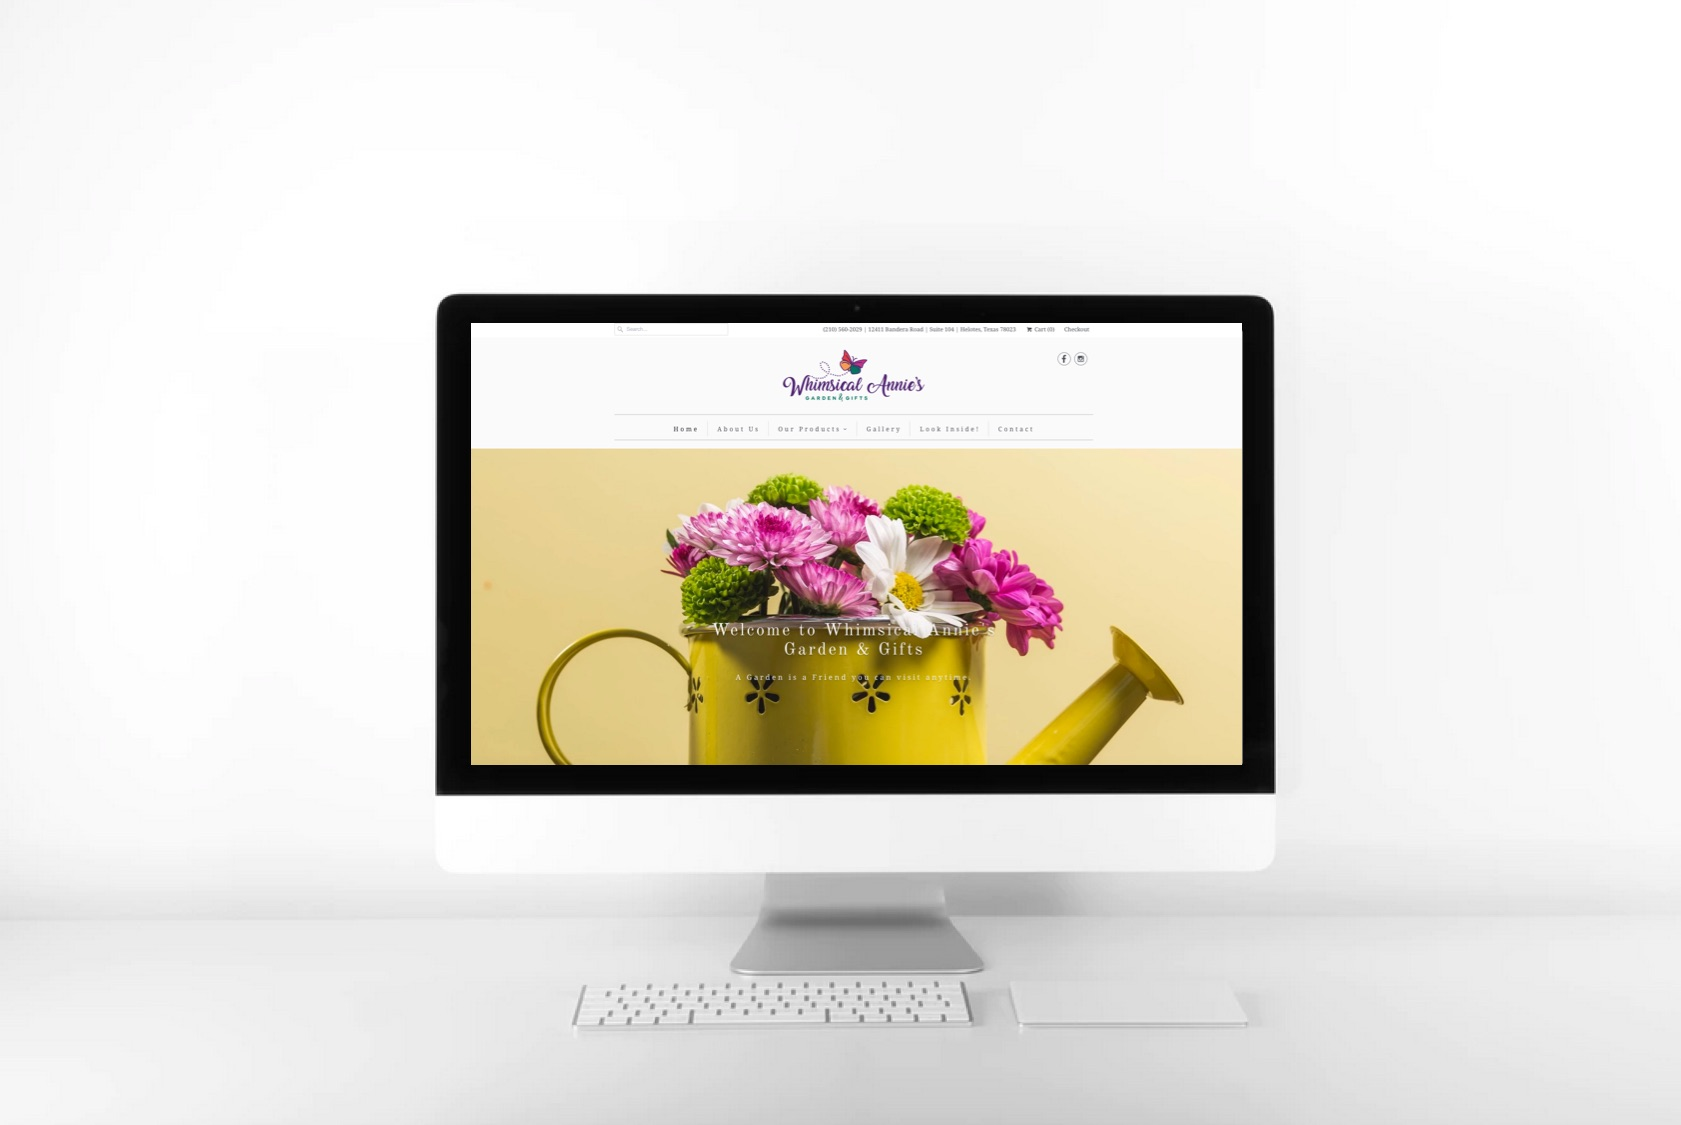 Whimsical Annie's Garden & Gifts: Online Store to Compliment Brick and Mortar